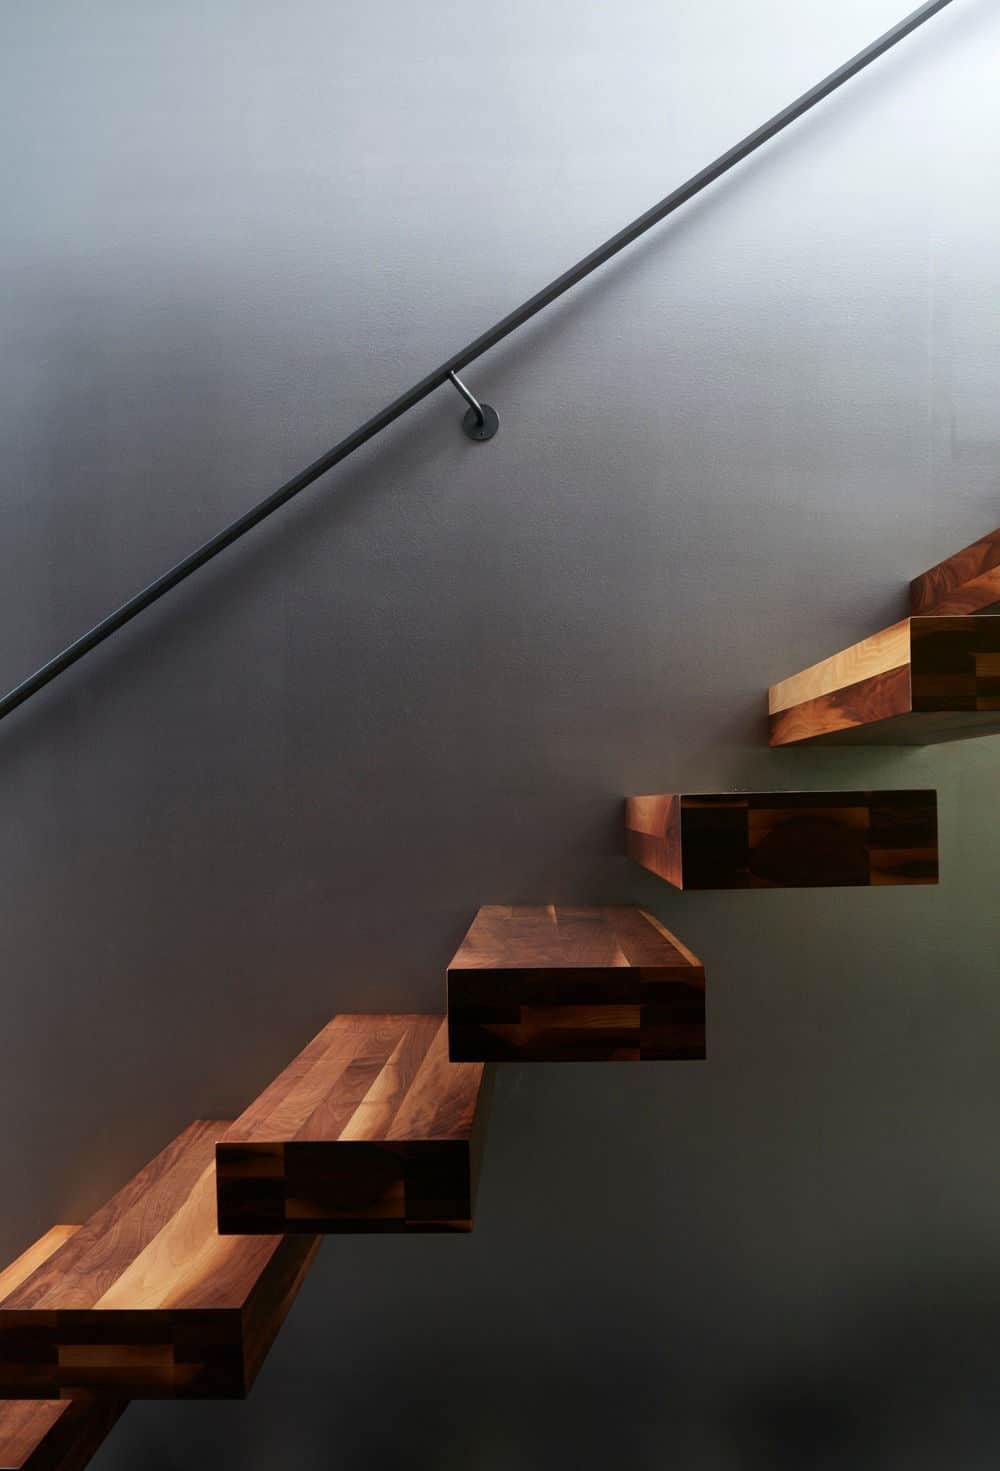 The staircase looks floating because of the architecture style. Photo Credit: James Brittain